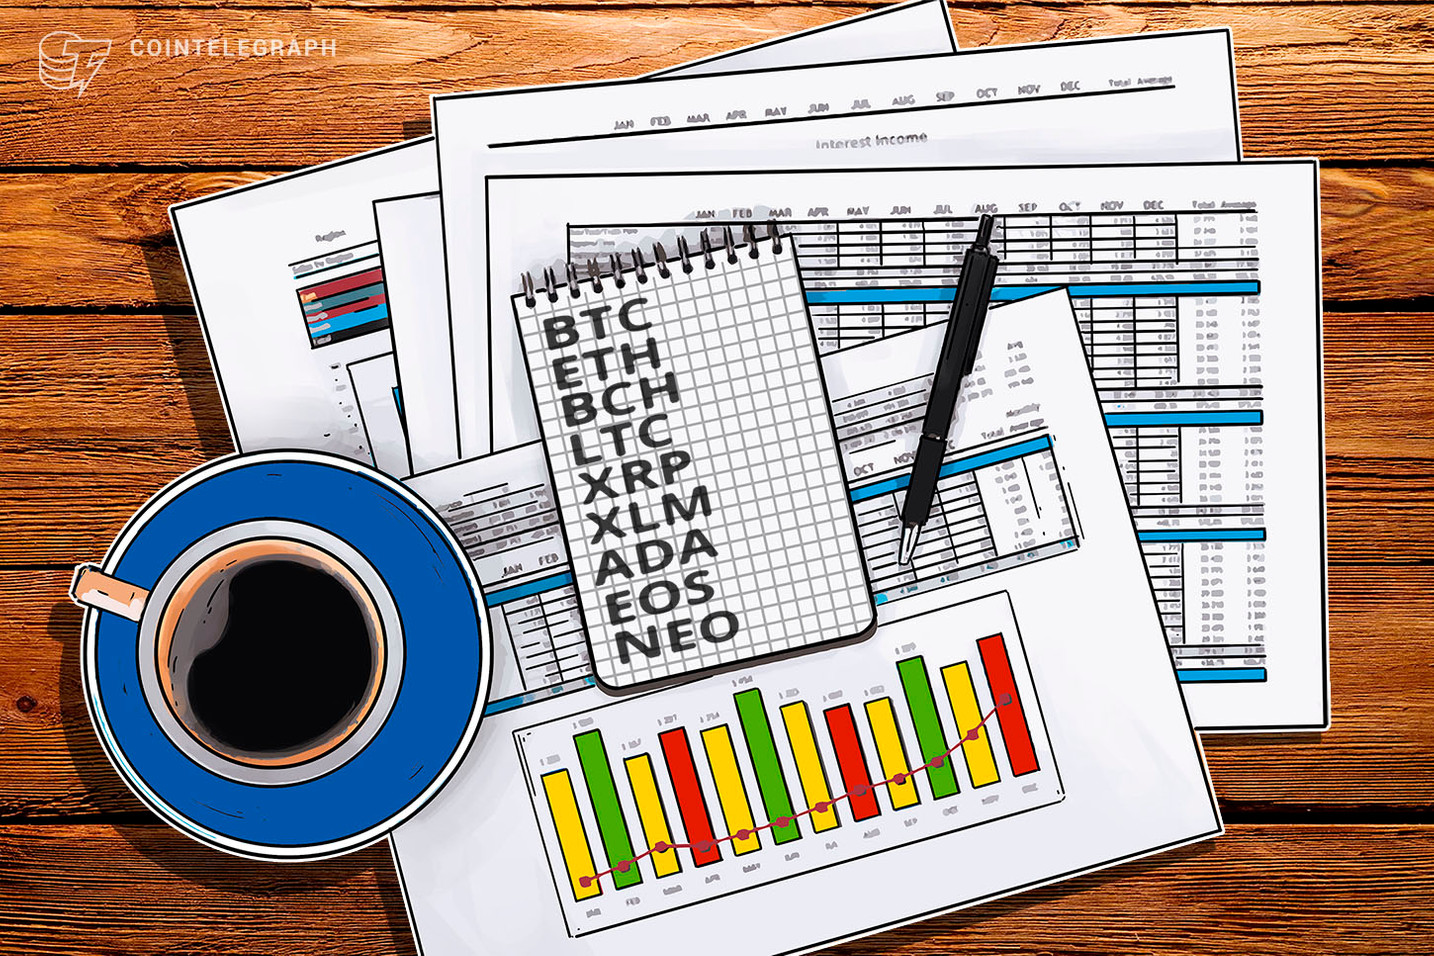 Bitcoin, Ethereum, Bitcoin Cash, Ripple, Stellar, Litecoin, Cardano, NEO, EOS: Price Analysis, April 11